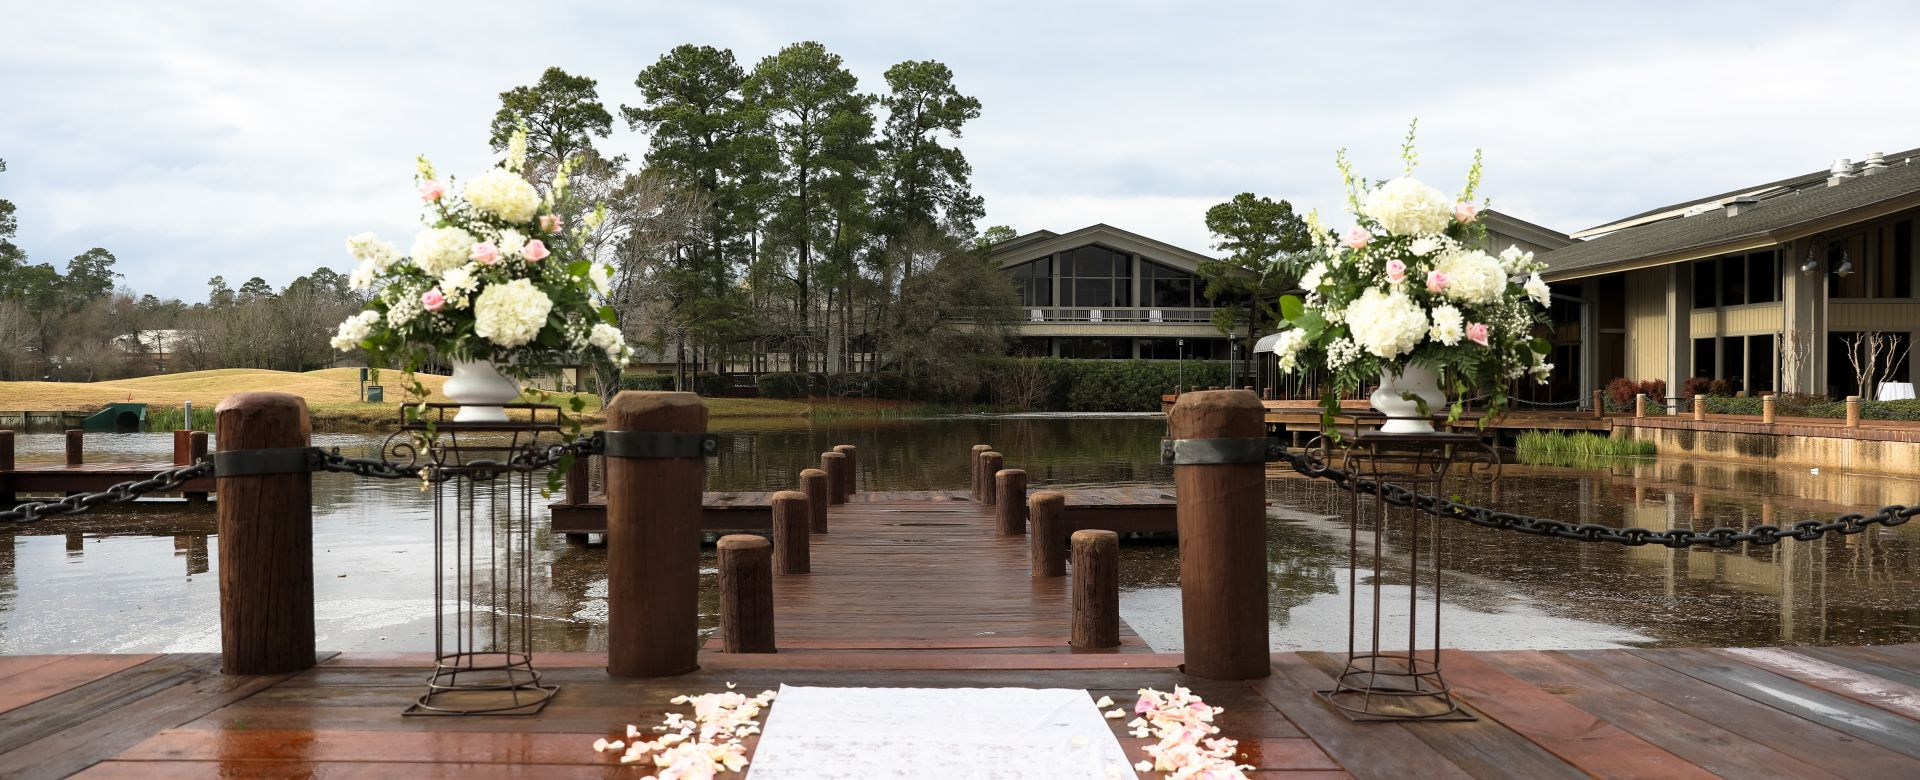 A wedding aisle lined with white petals on a wooden dock.